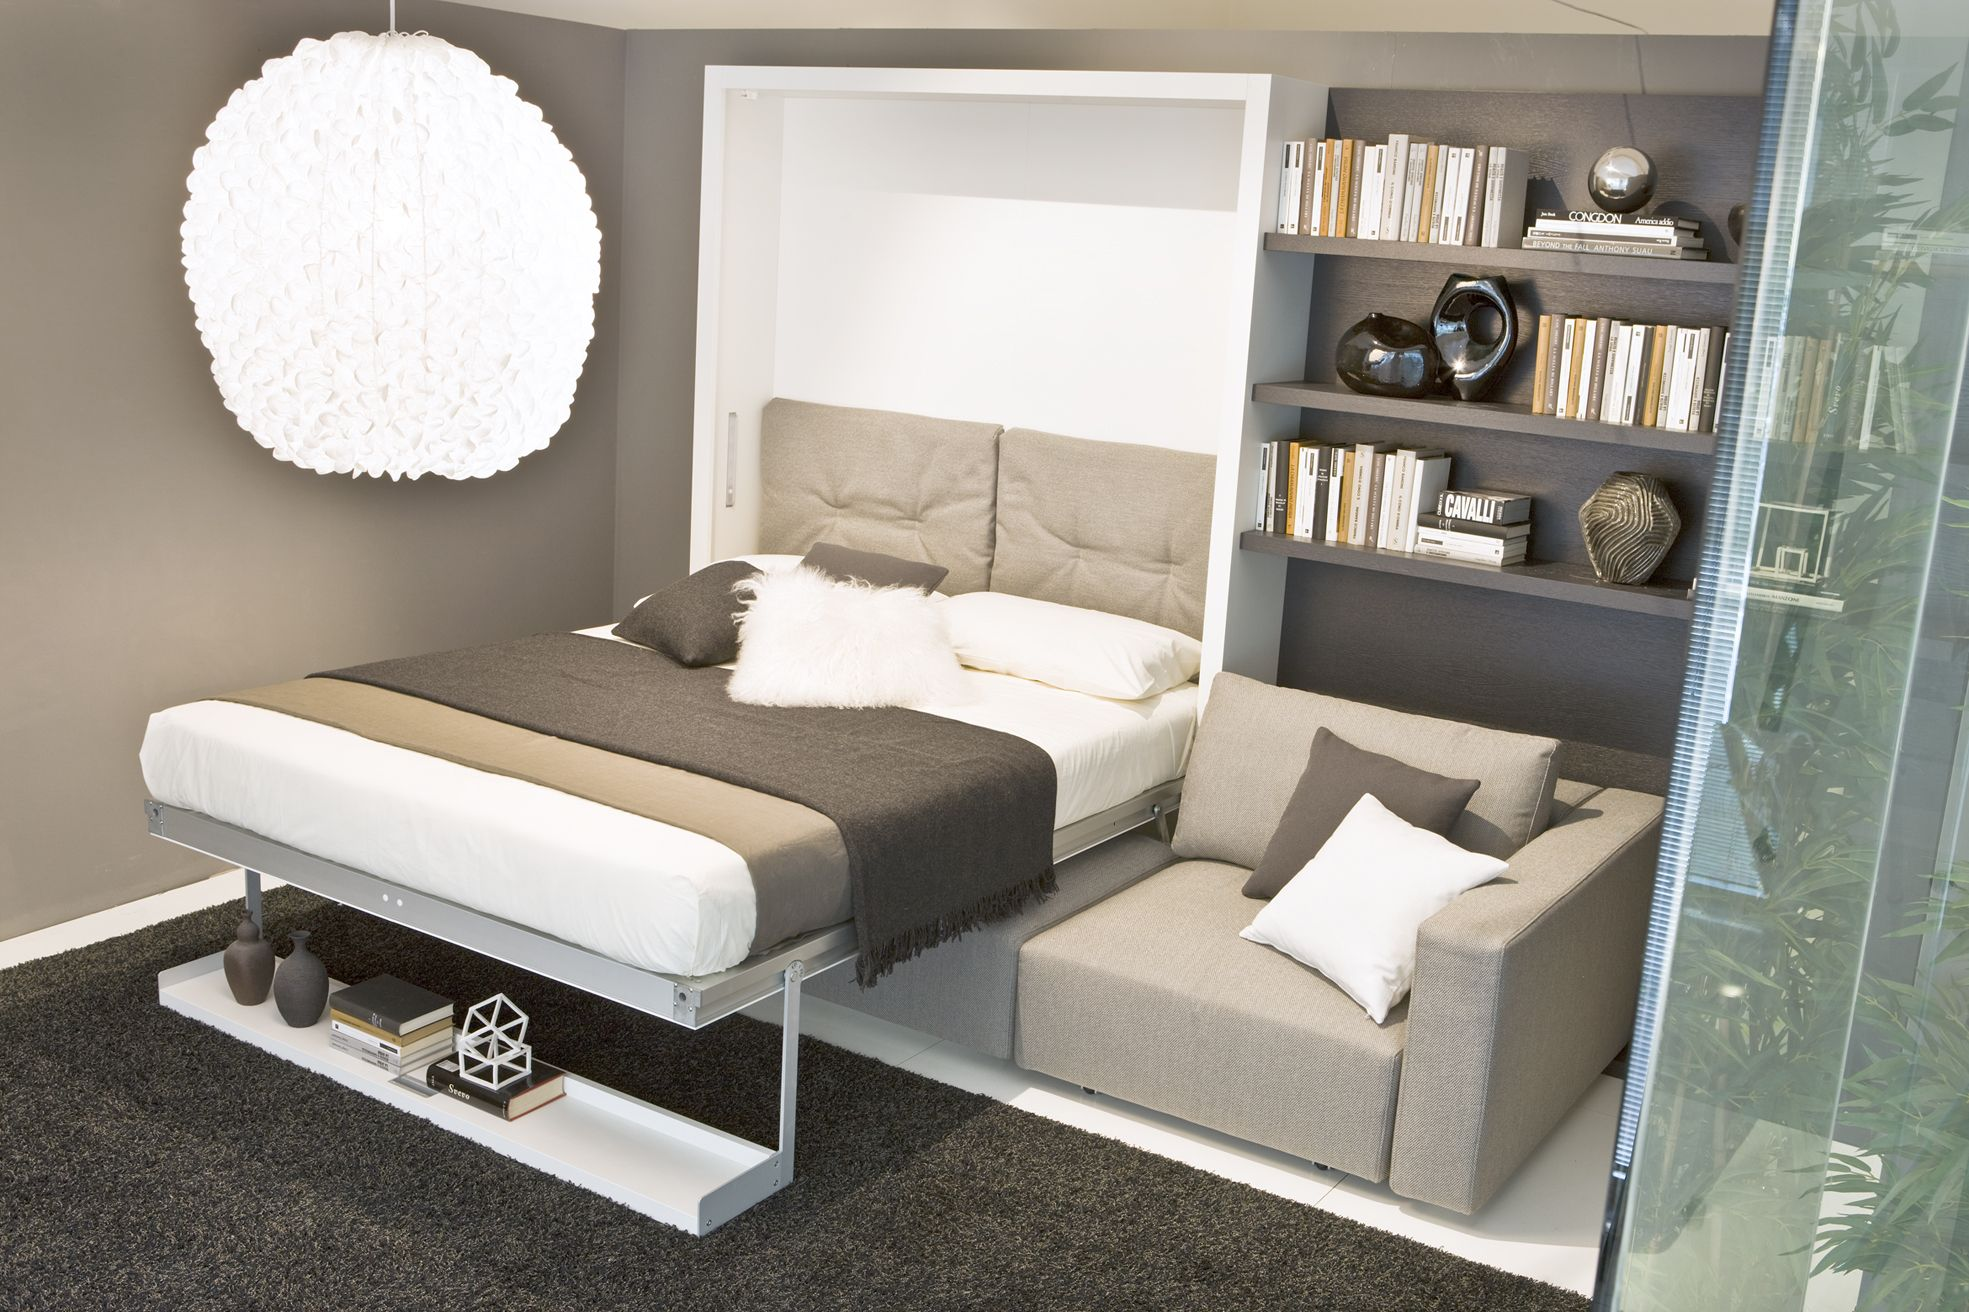 Beau Contemporary Home Interior Furniture Design, Swing Murphy Bed System By  Pierluigi Colombo Bed Detail